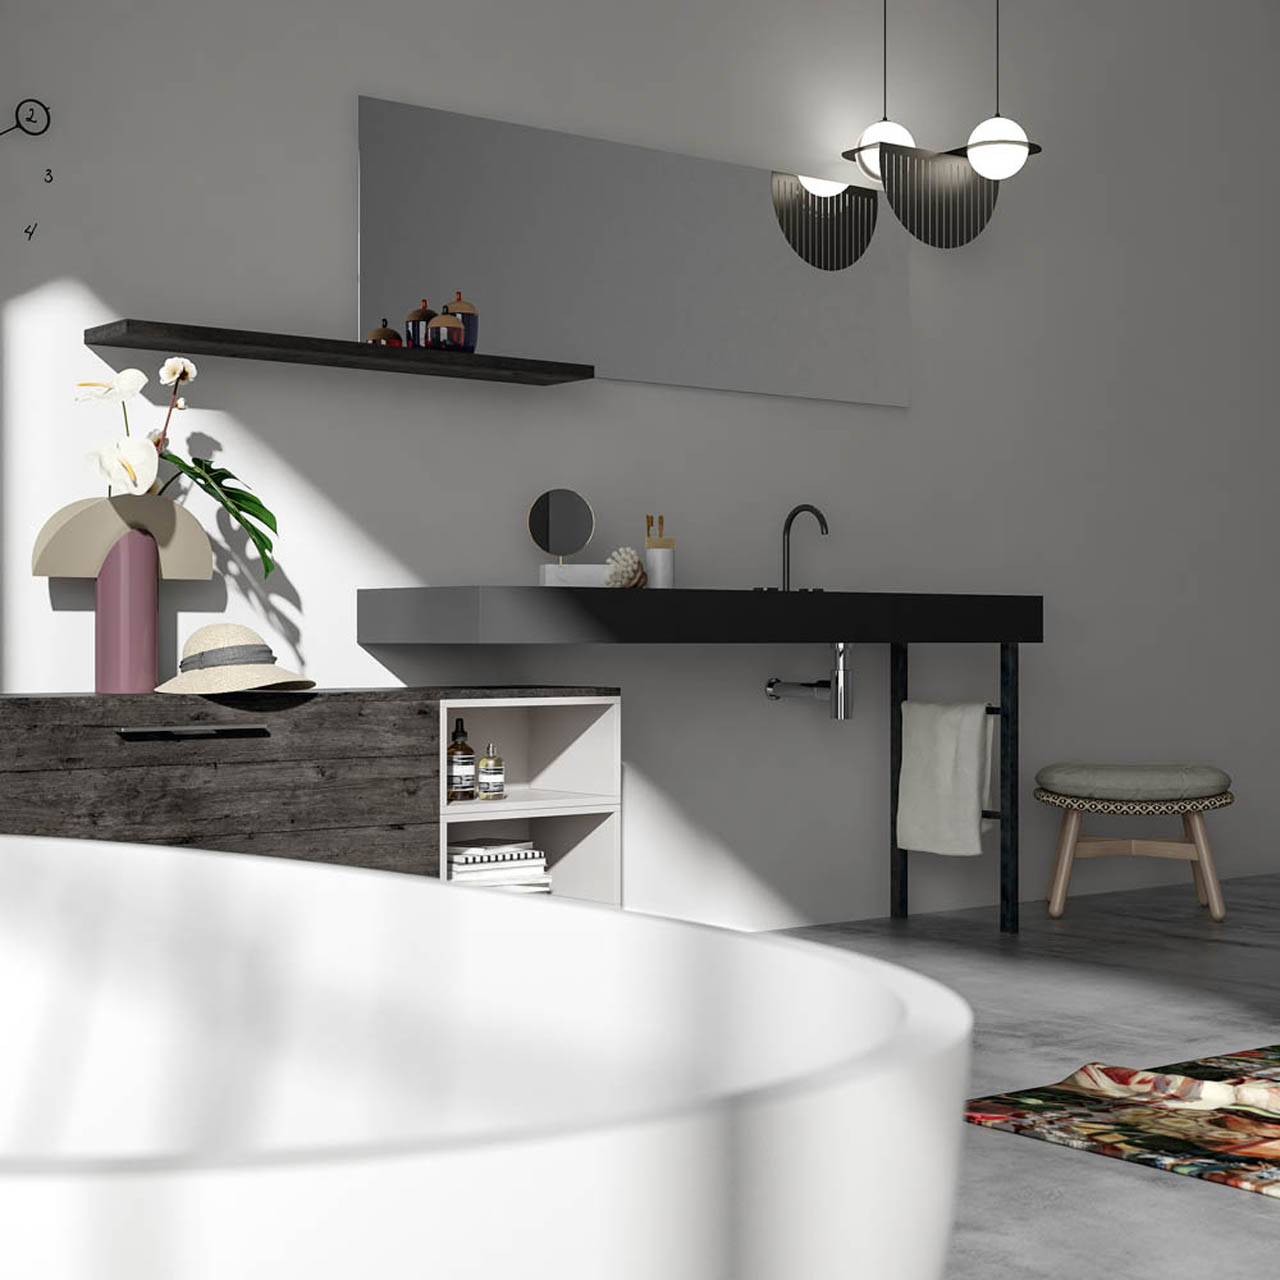 bagno-time-11-4